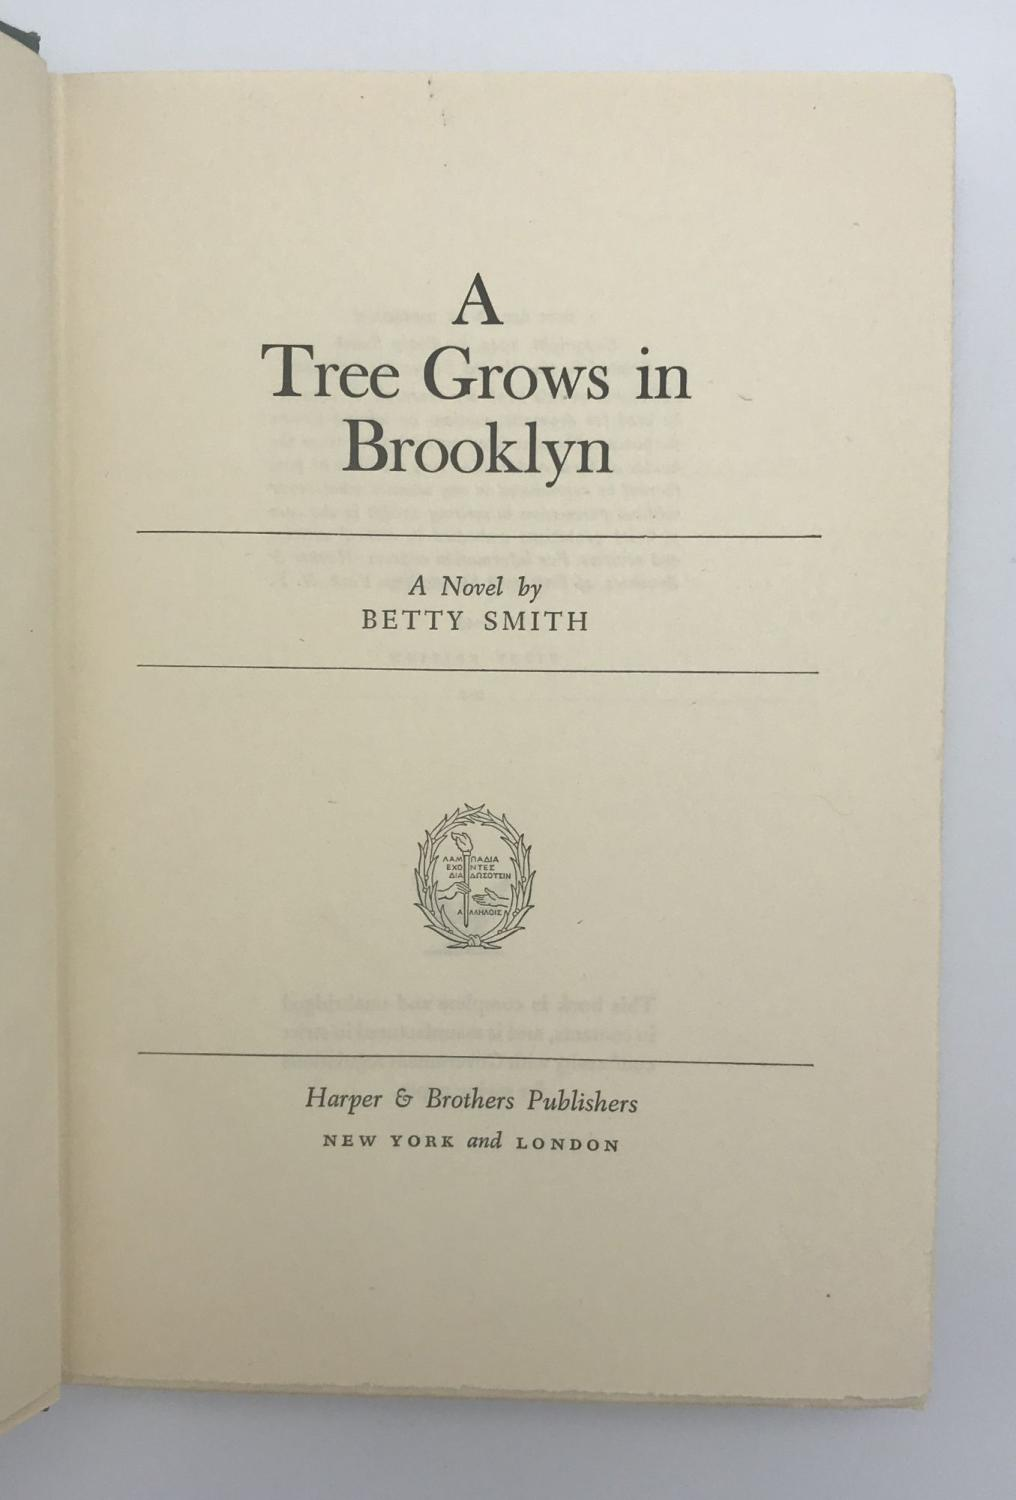 an account of a simple life in a tree grows in brooklyn by betsy smith Based on the novel by betty smith, this film relates the trials and tribulations of a turn-of-the-century brooklyn tenement family  a tree grows in brooklyn is a great kazan film putting.